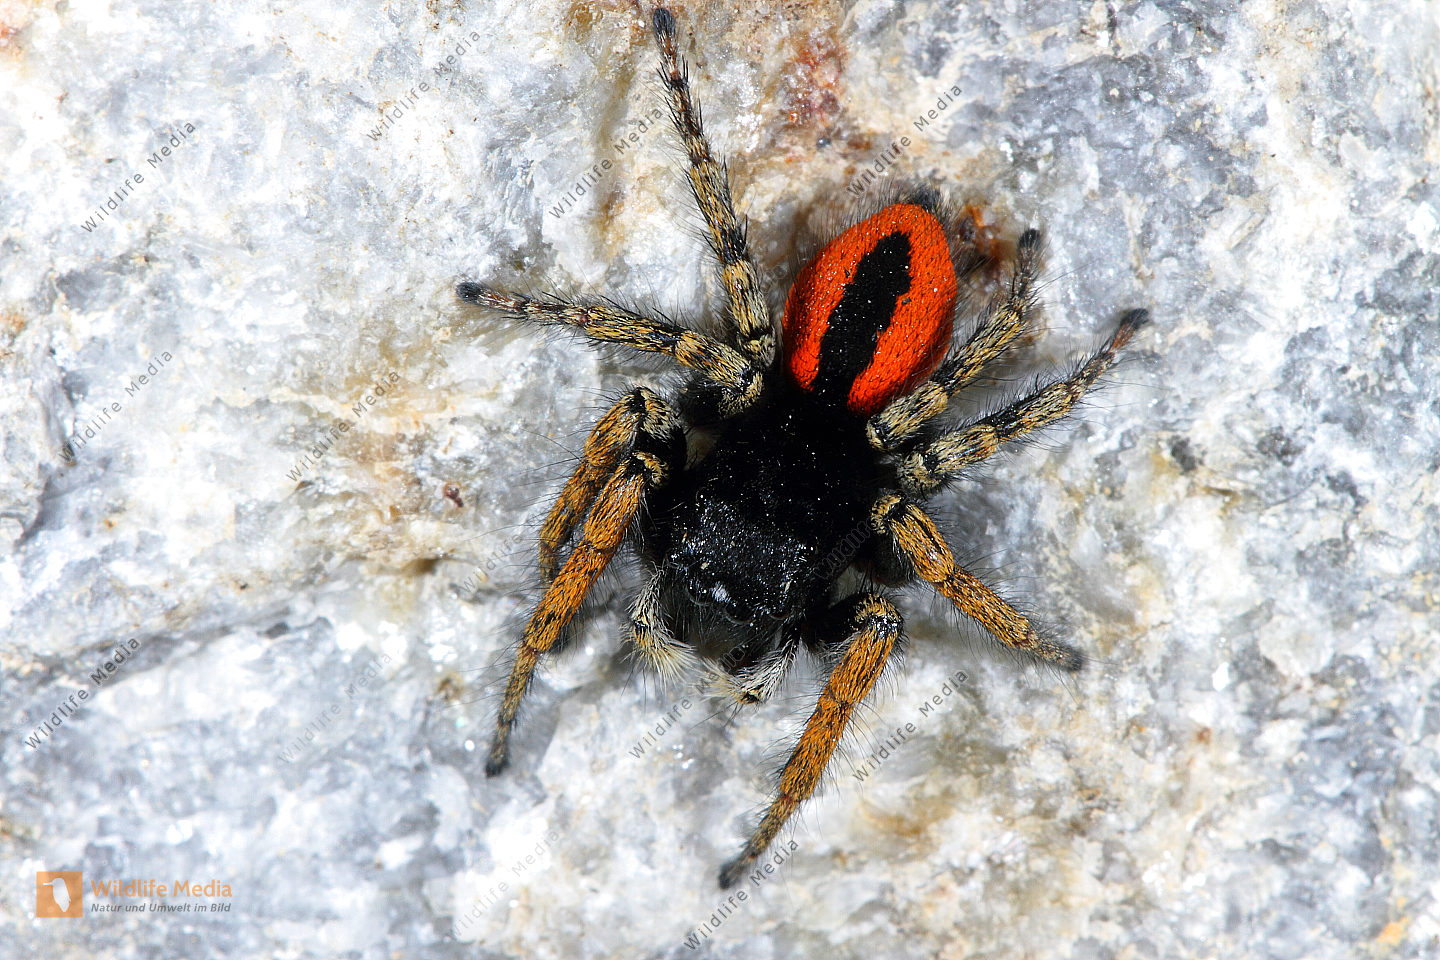 Rote Springspinne